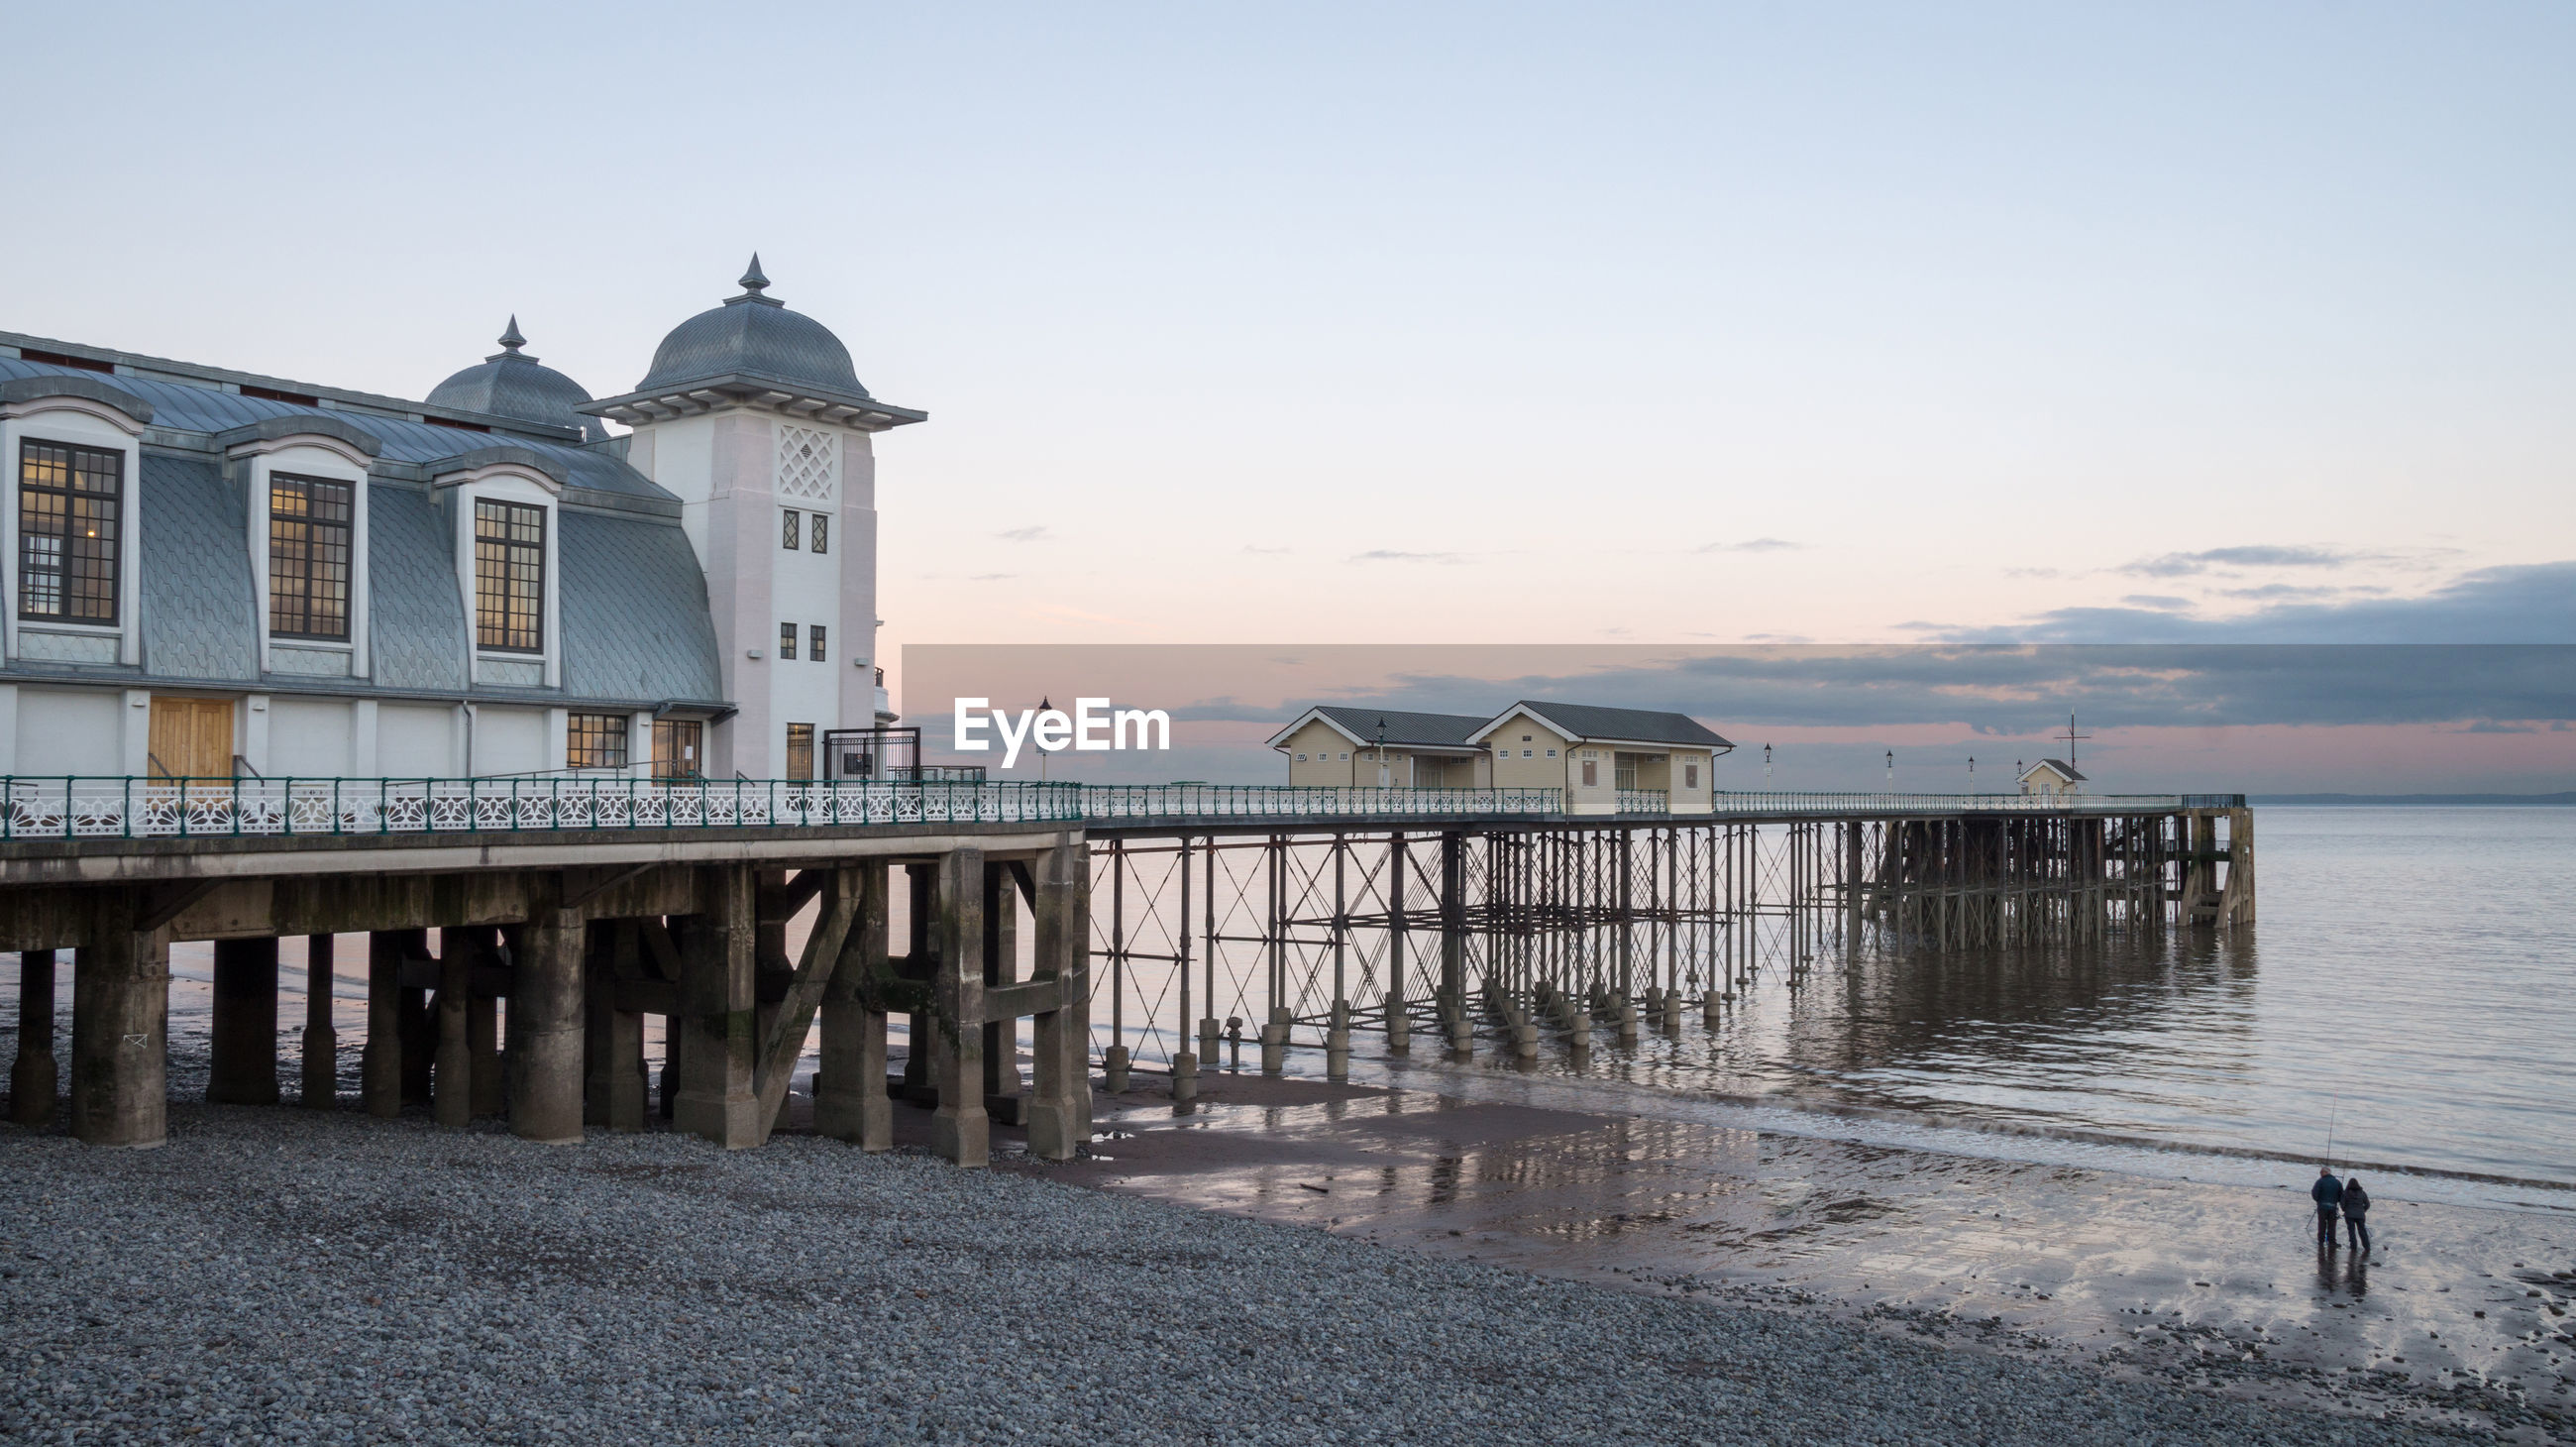 PIER ON SEA AGAINST BUILDINGS DURING SUNSET